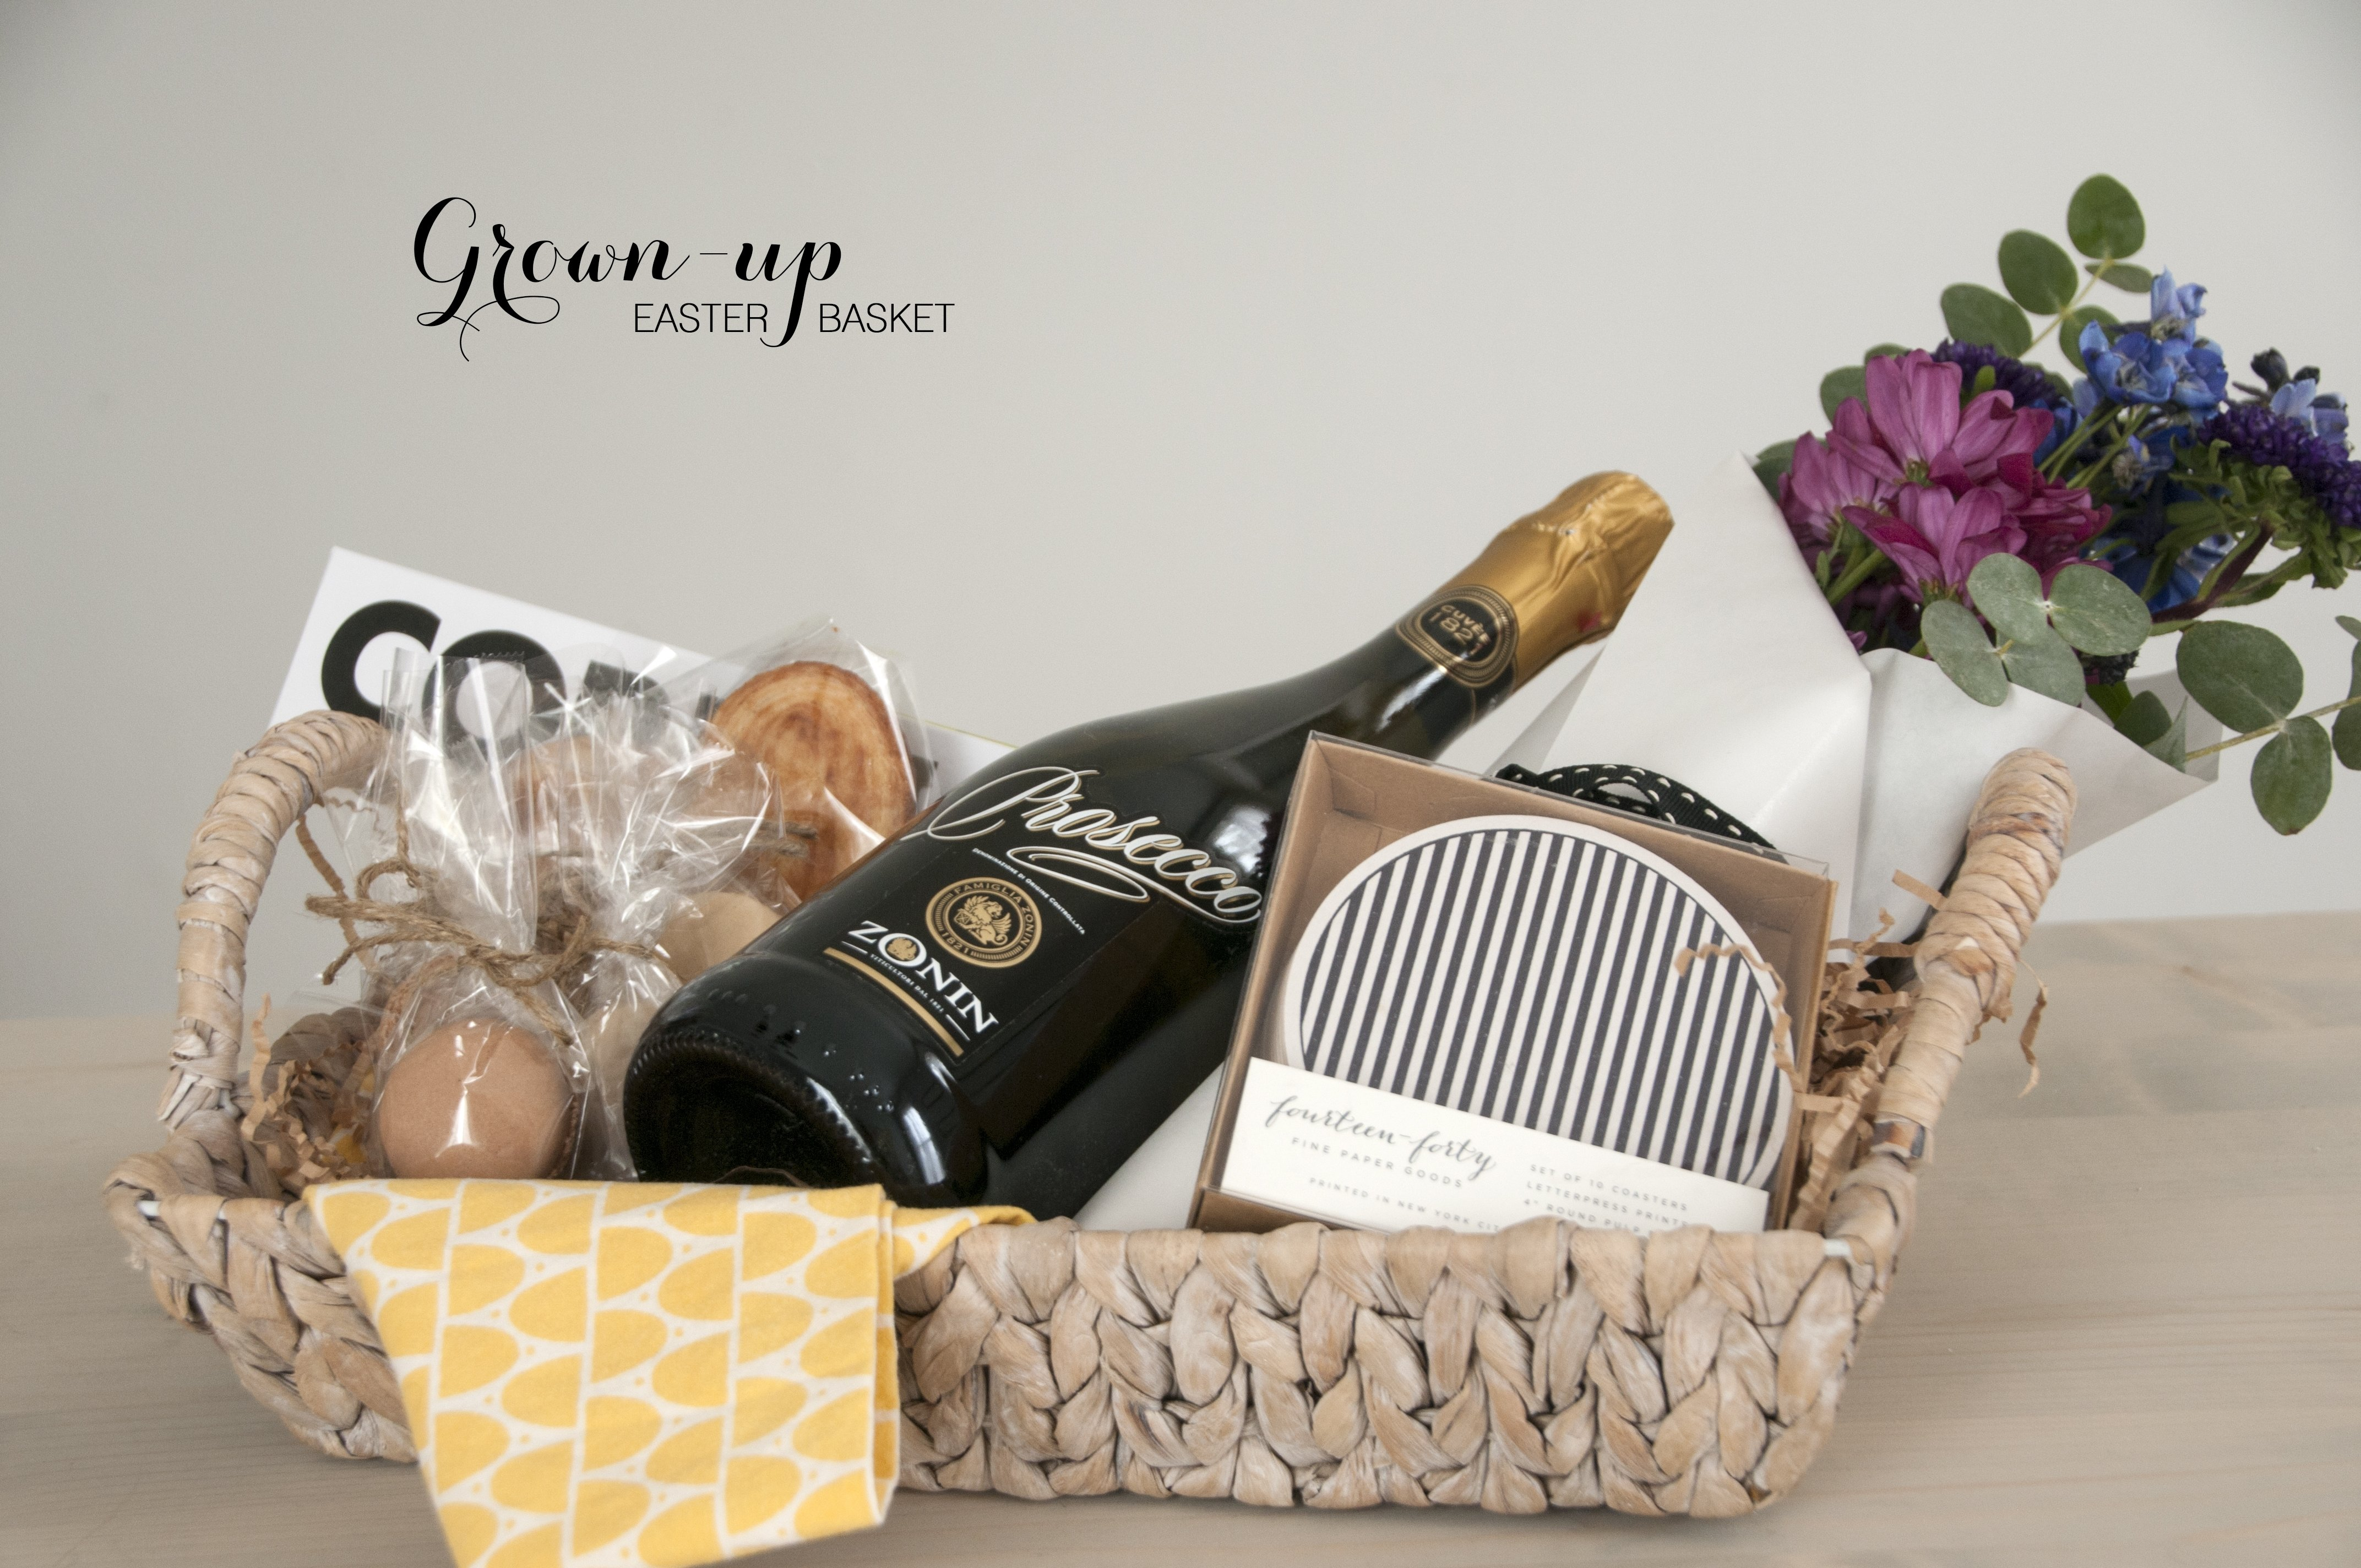 10 Stylish Easter Gift Ideas For Adults an easter basket for grown ups earnest home co 2 2021